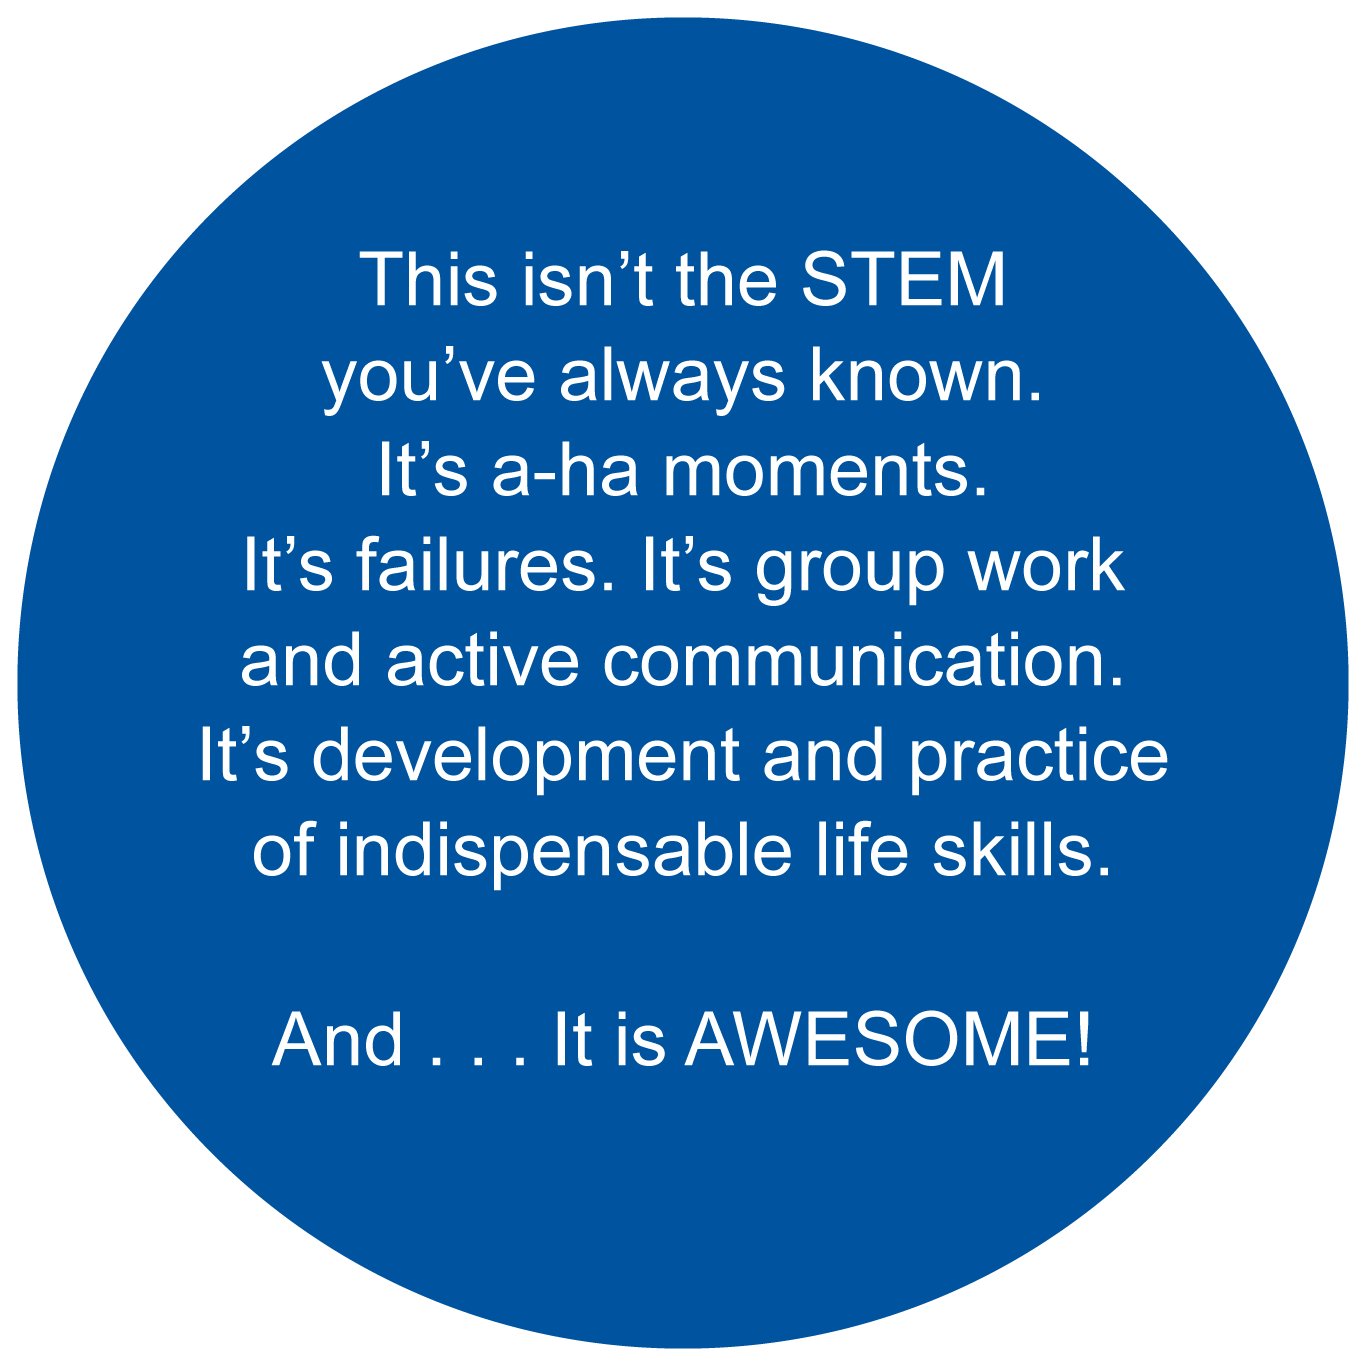 This isn't the STEM you've always known. It's a-ha moments. It's failures. It's group work and active communication. It's development and practice of indispensable life skills. And . . . It is AWESOME!